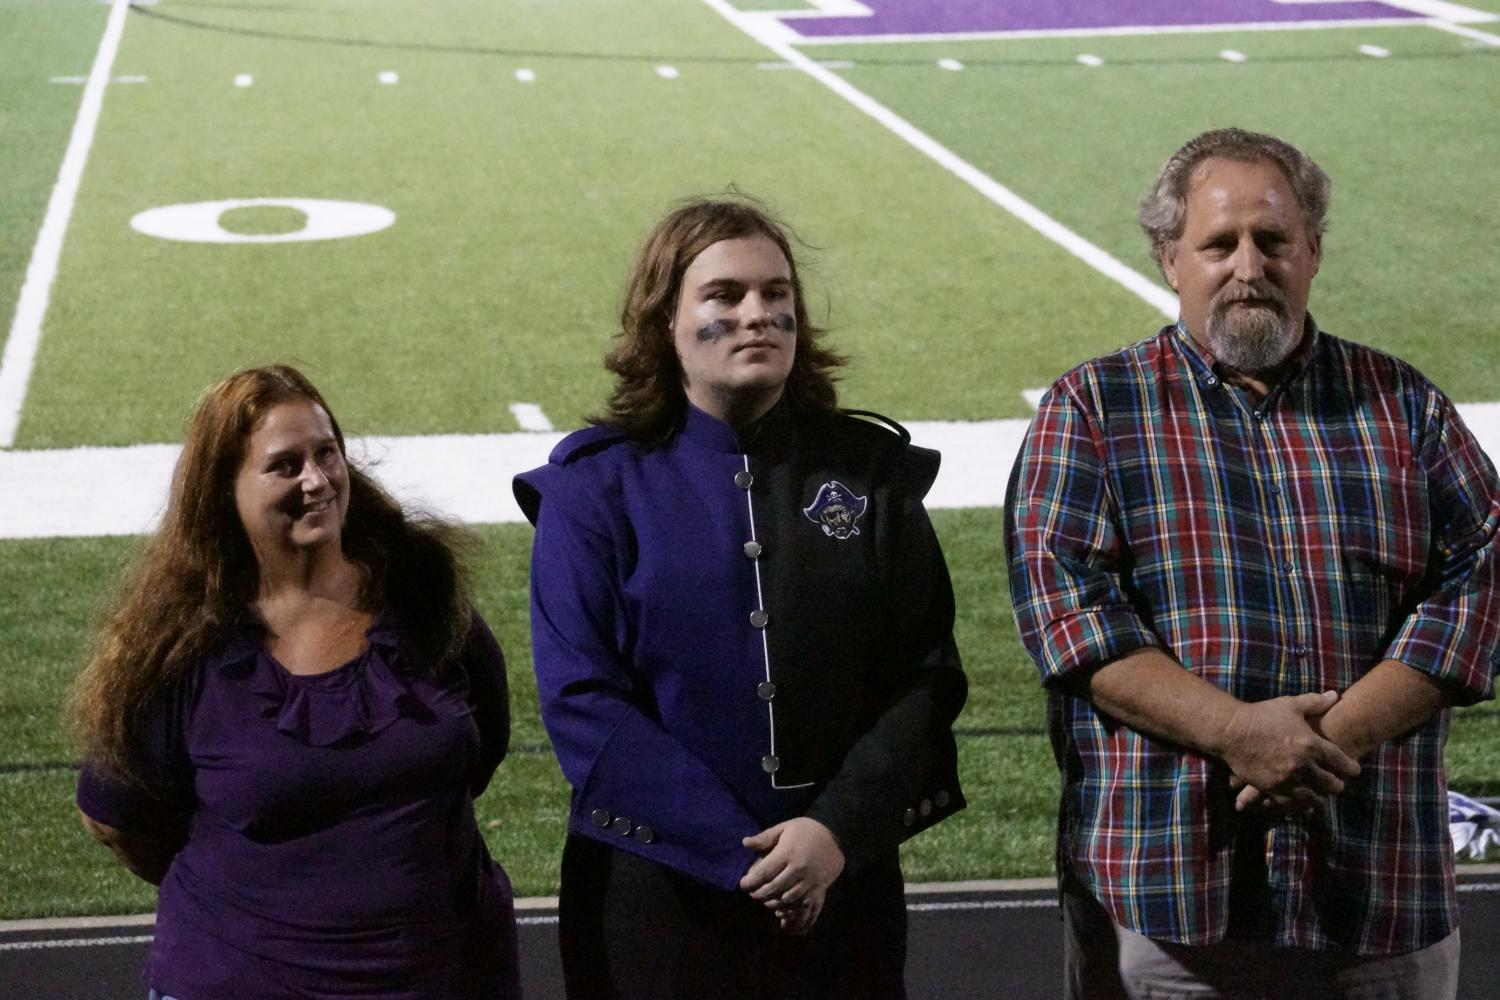 Senior Michael Gentry stands next to his parents on the field as he is recognized as a commended National Merit Scholar.